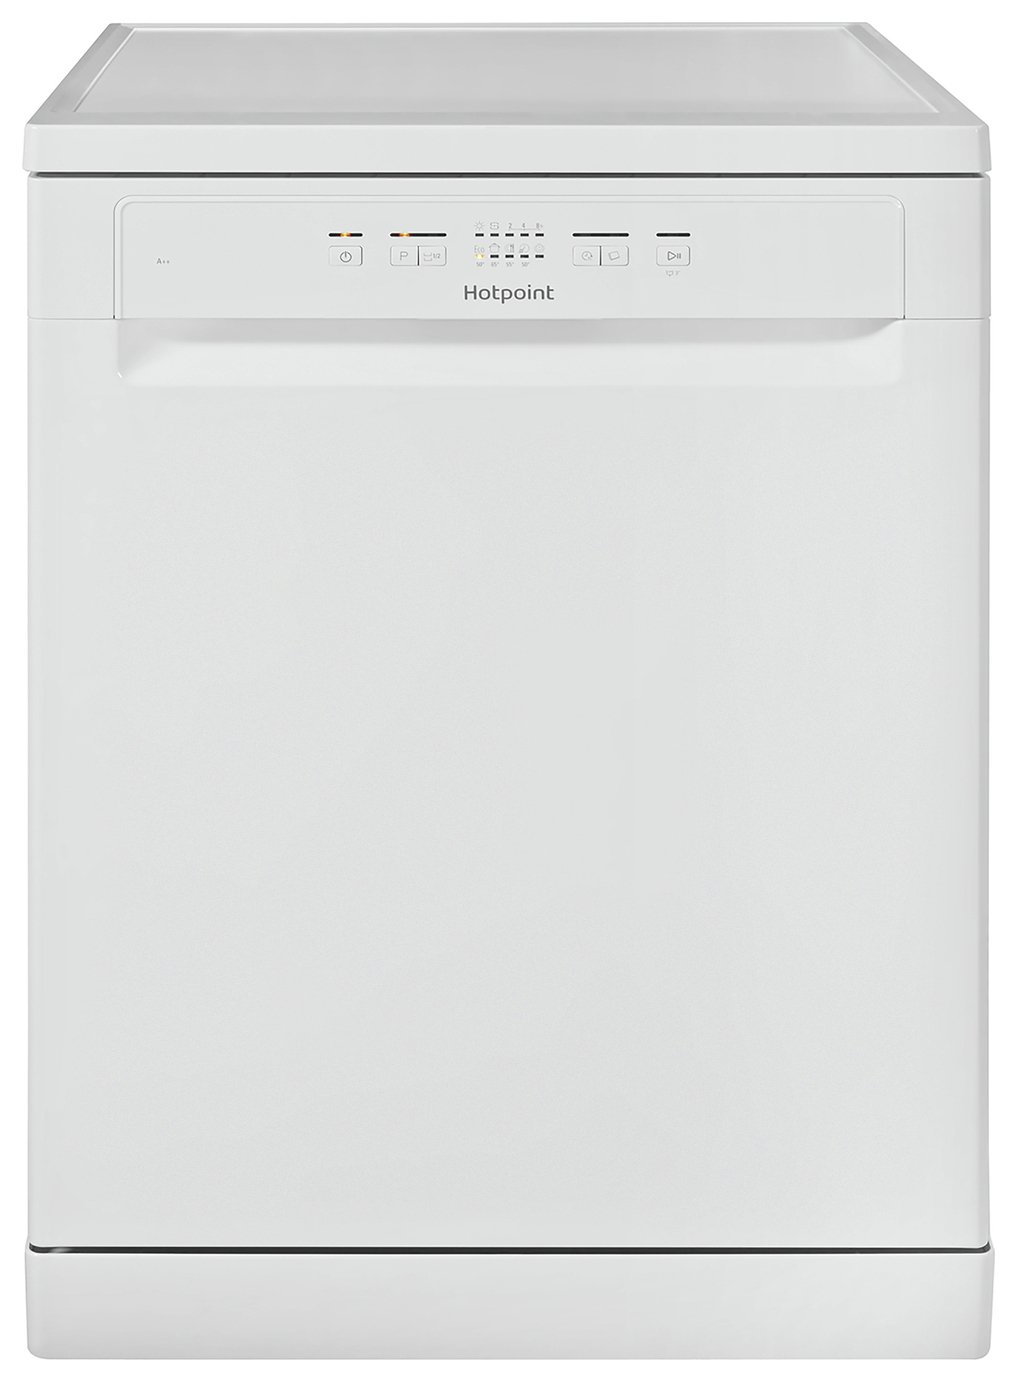 Hotpoint HFC2B+26C Full Size Dishwasher - White